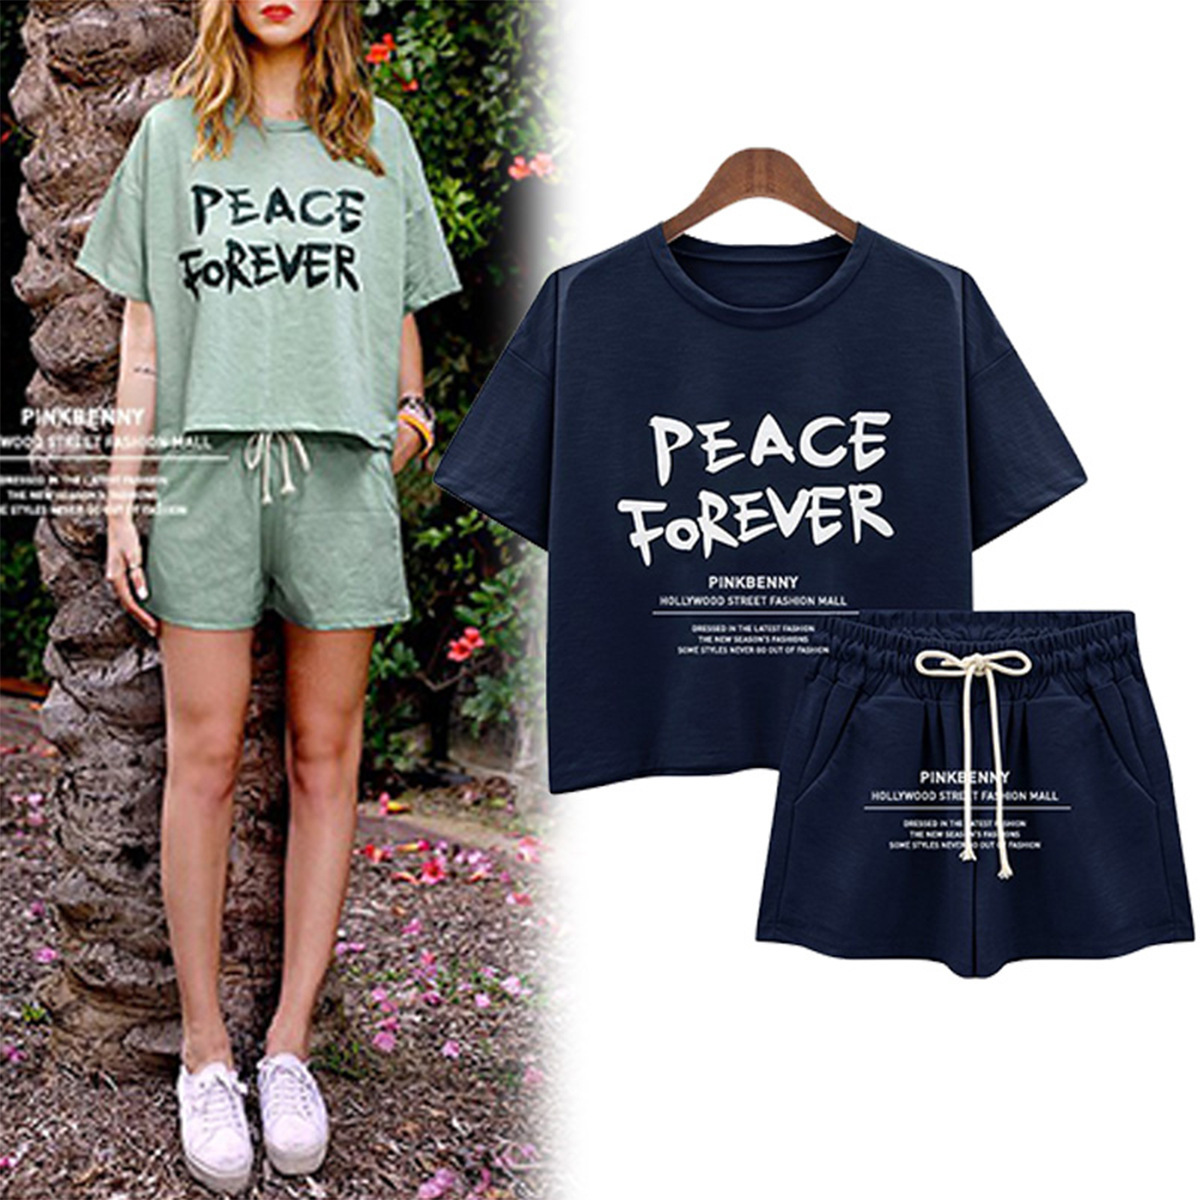 WOMEN'S Dress 2019 New Style Summer South Korea Tops Elastic Shorts Two-Piece Set Casual Sports Clothing Wholesale